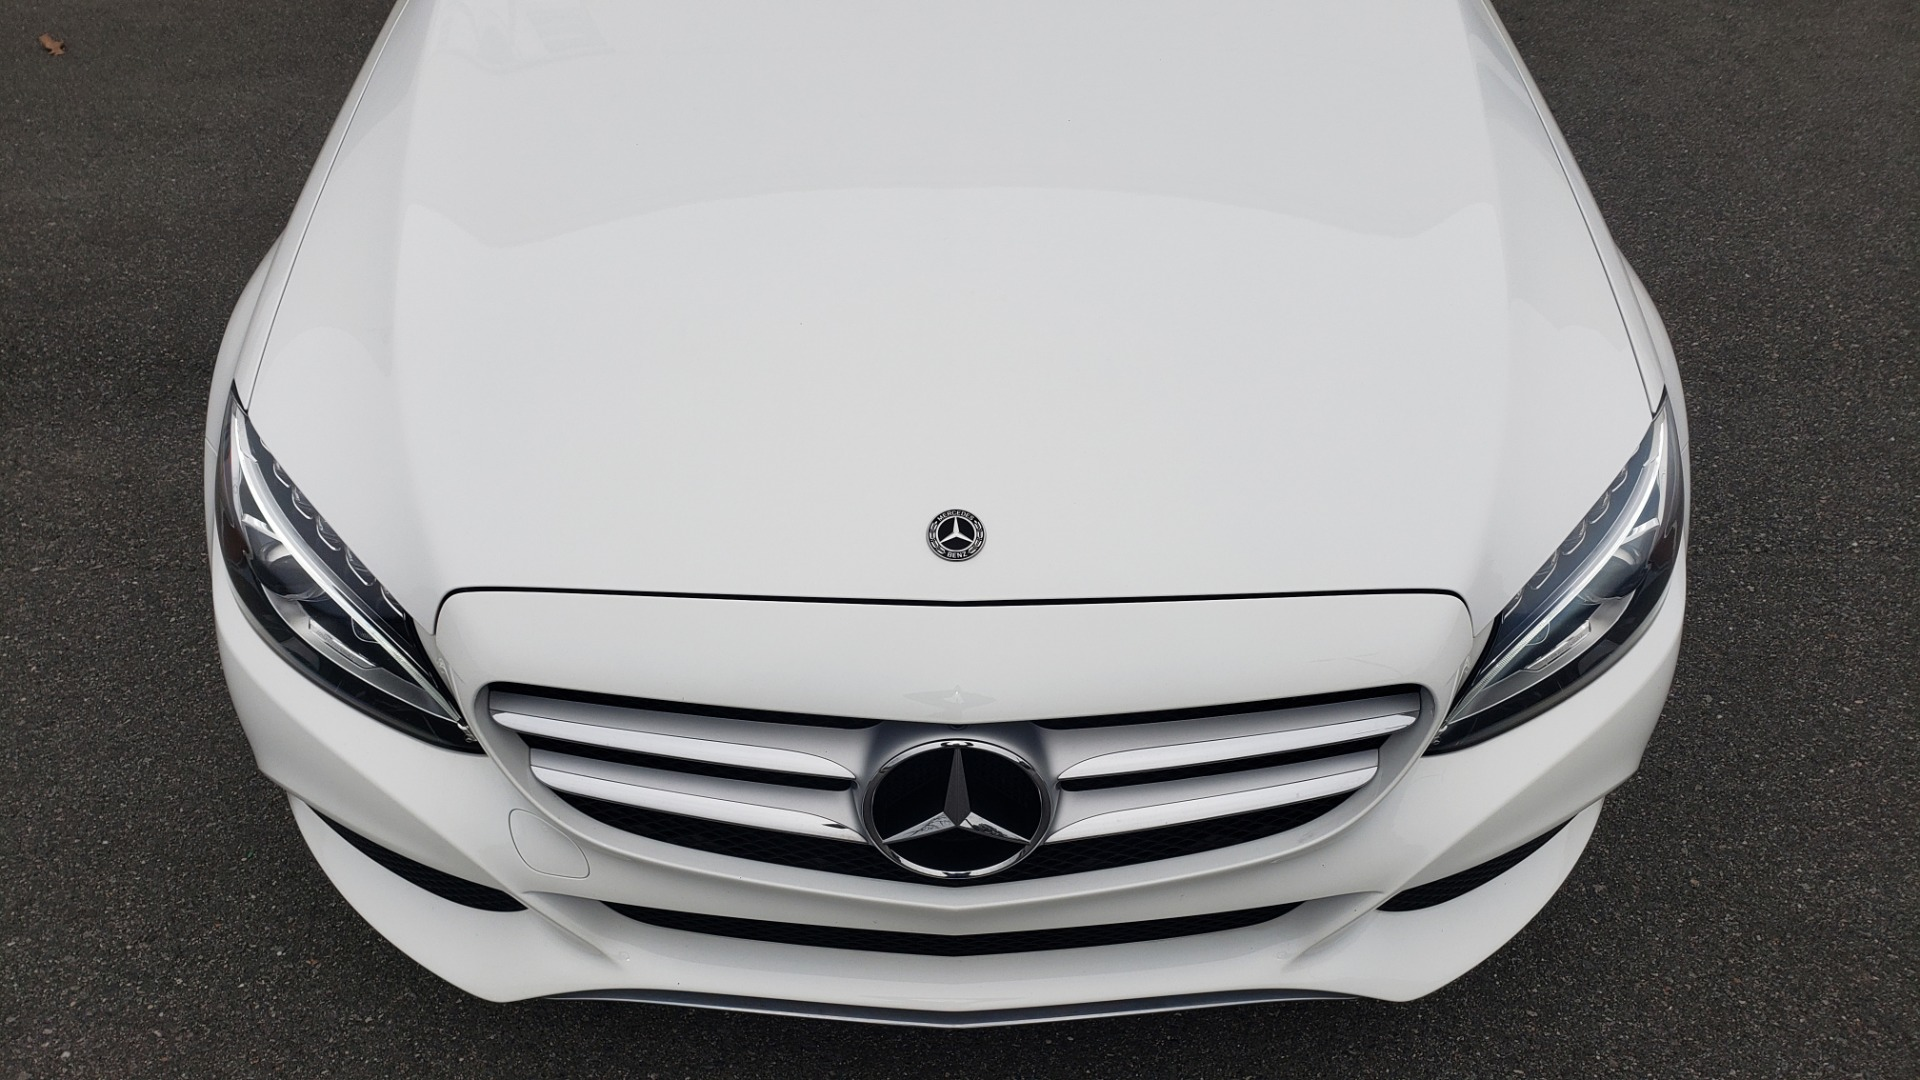 Used 2018 Mercedes-Benz C-CLASS C 300 PREMIUM / NAV / HTD STS / APPLY CARPLAY / REARVIEW for sale $26,695 at Formula Imports in Charlotte NC 28227 23